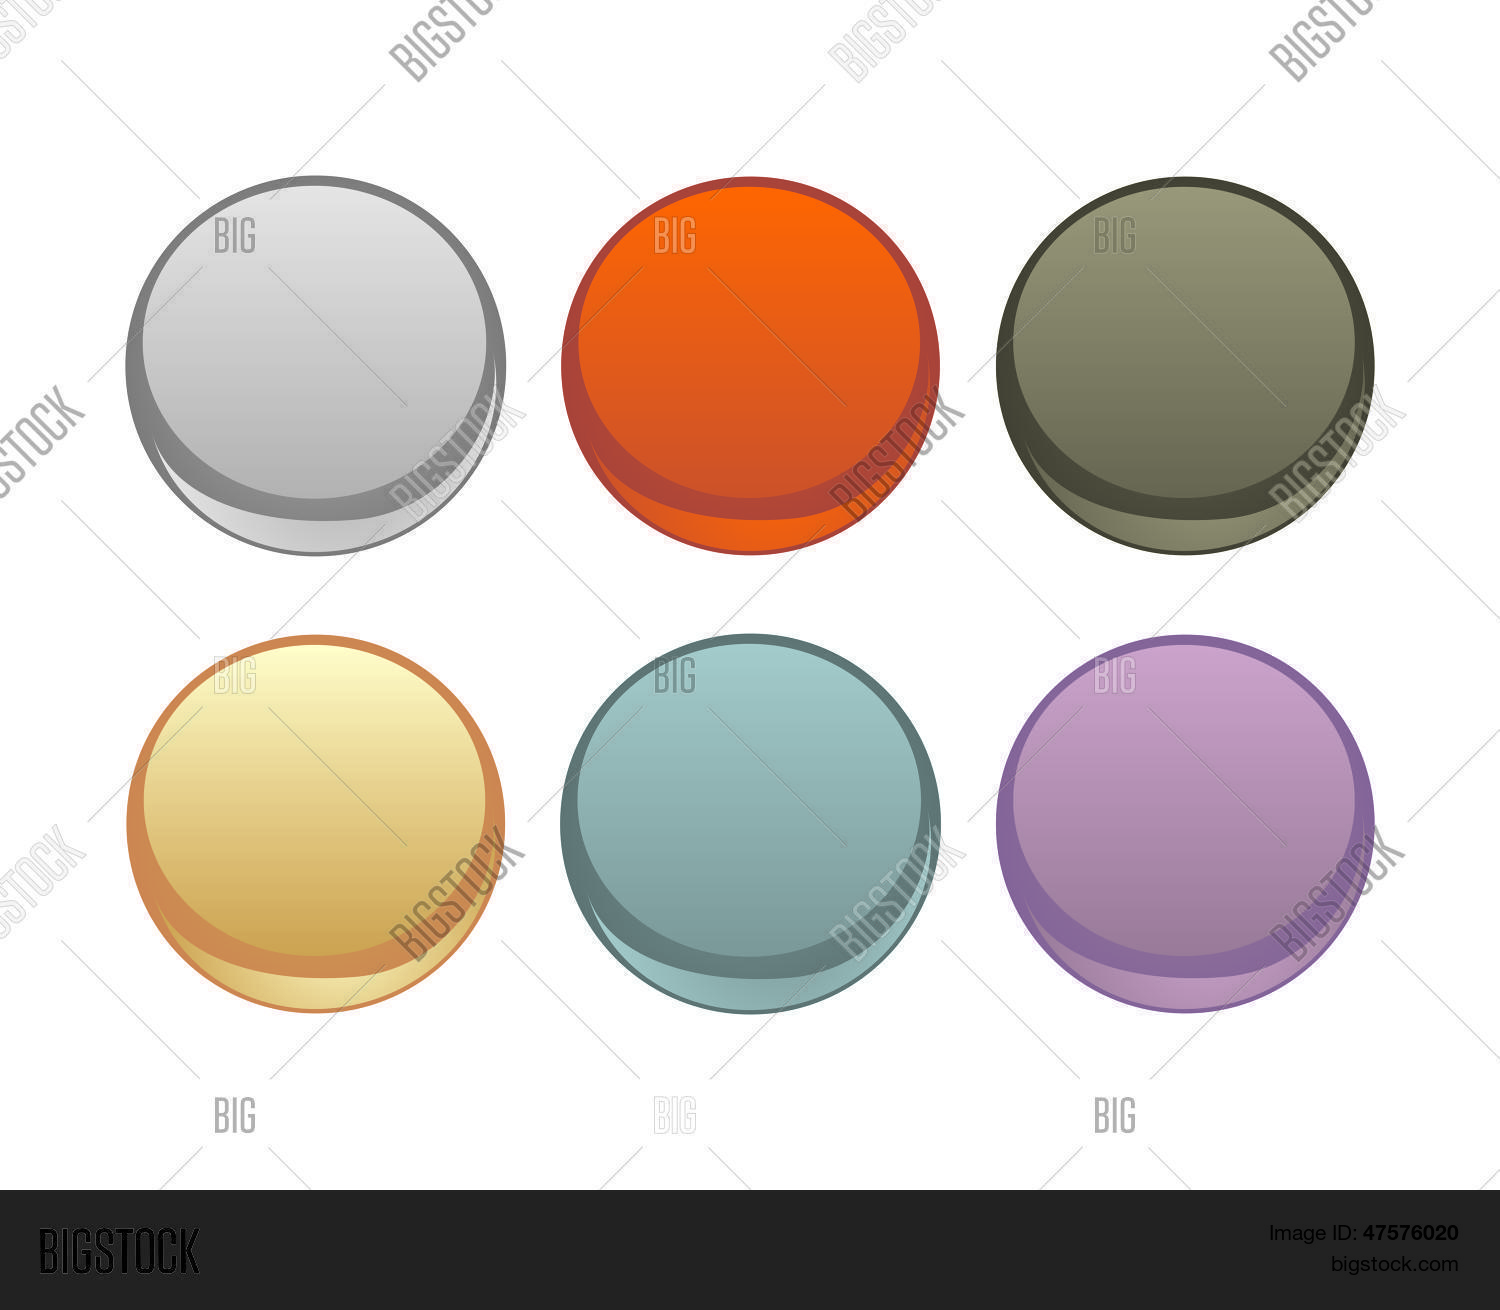 Vector Web Buttons Vector & Photo (Free Trial) | Bigstock